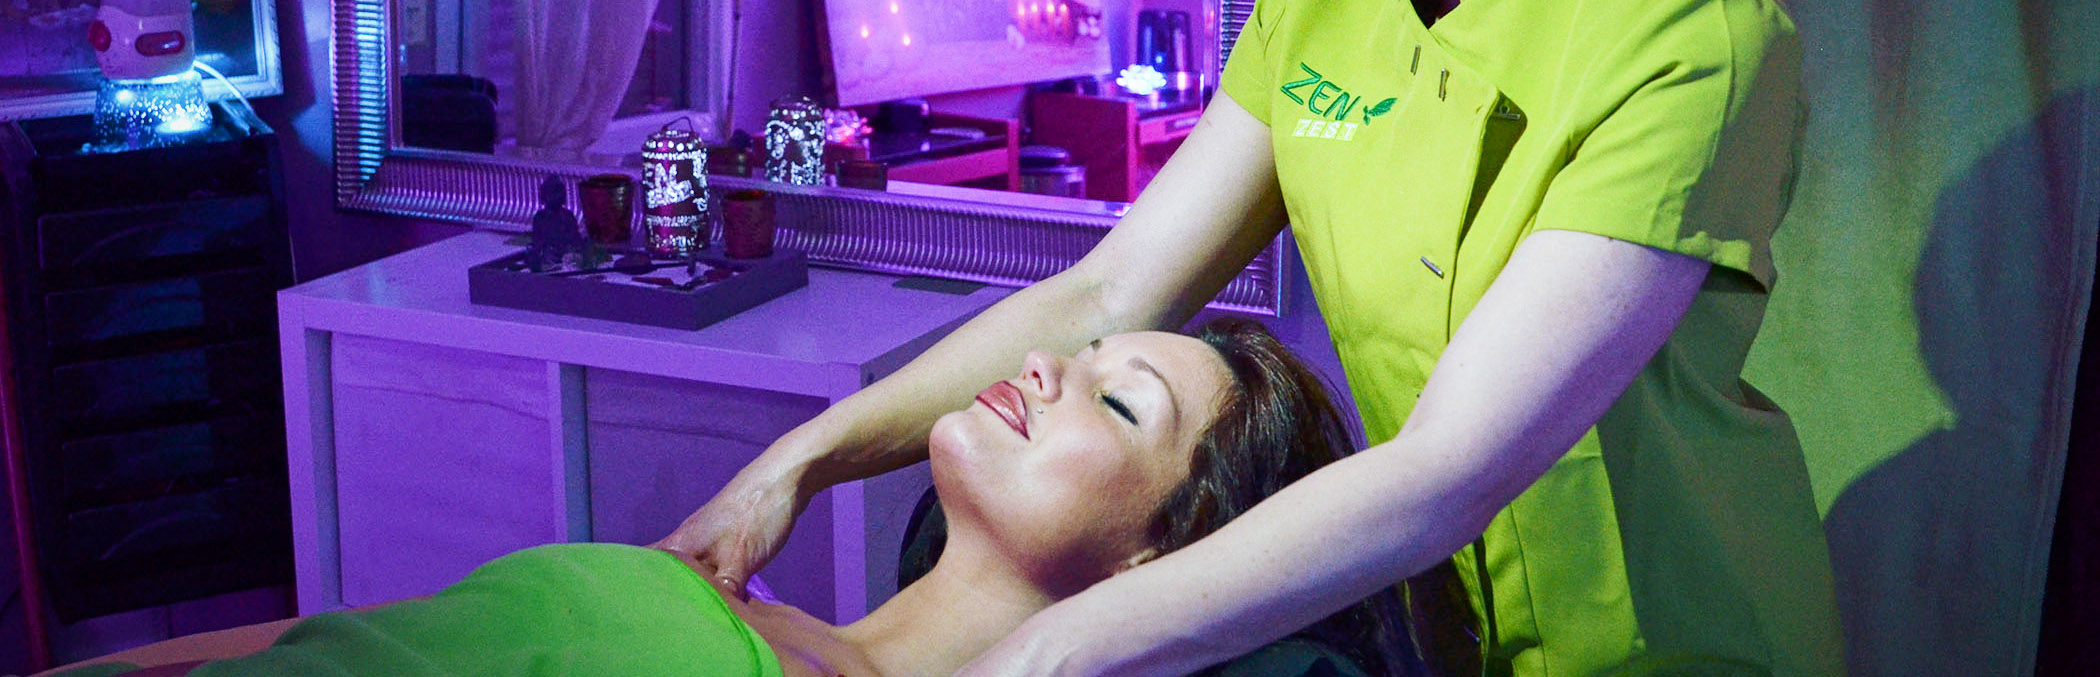 massage à Nantes